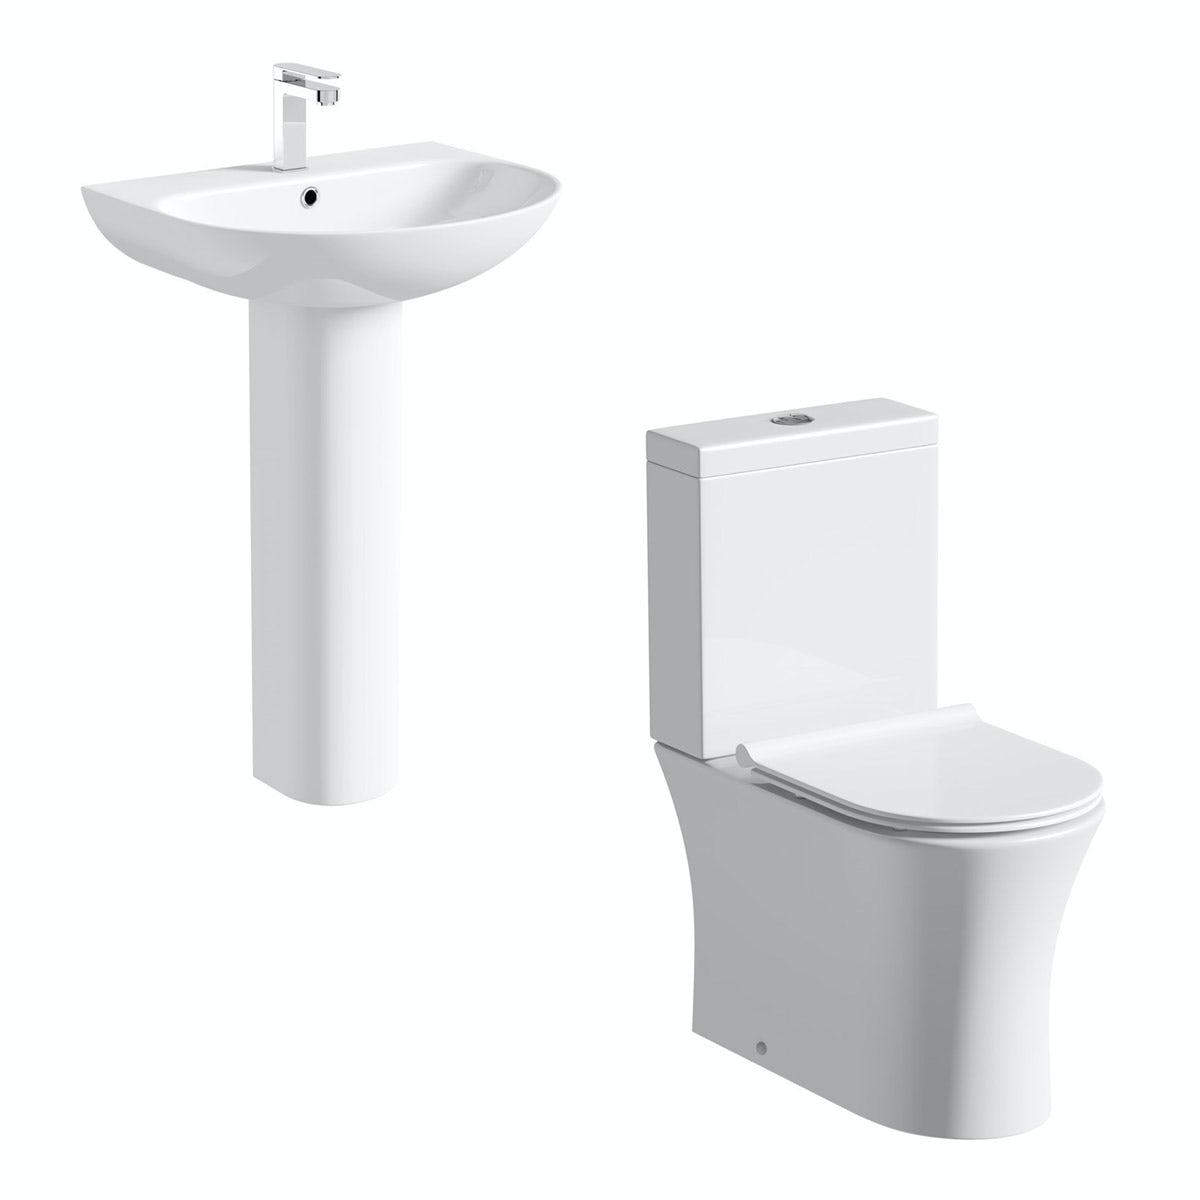 Mode Hardy rimless slimline cloakroom suite with full pedestal basin 555mm